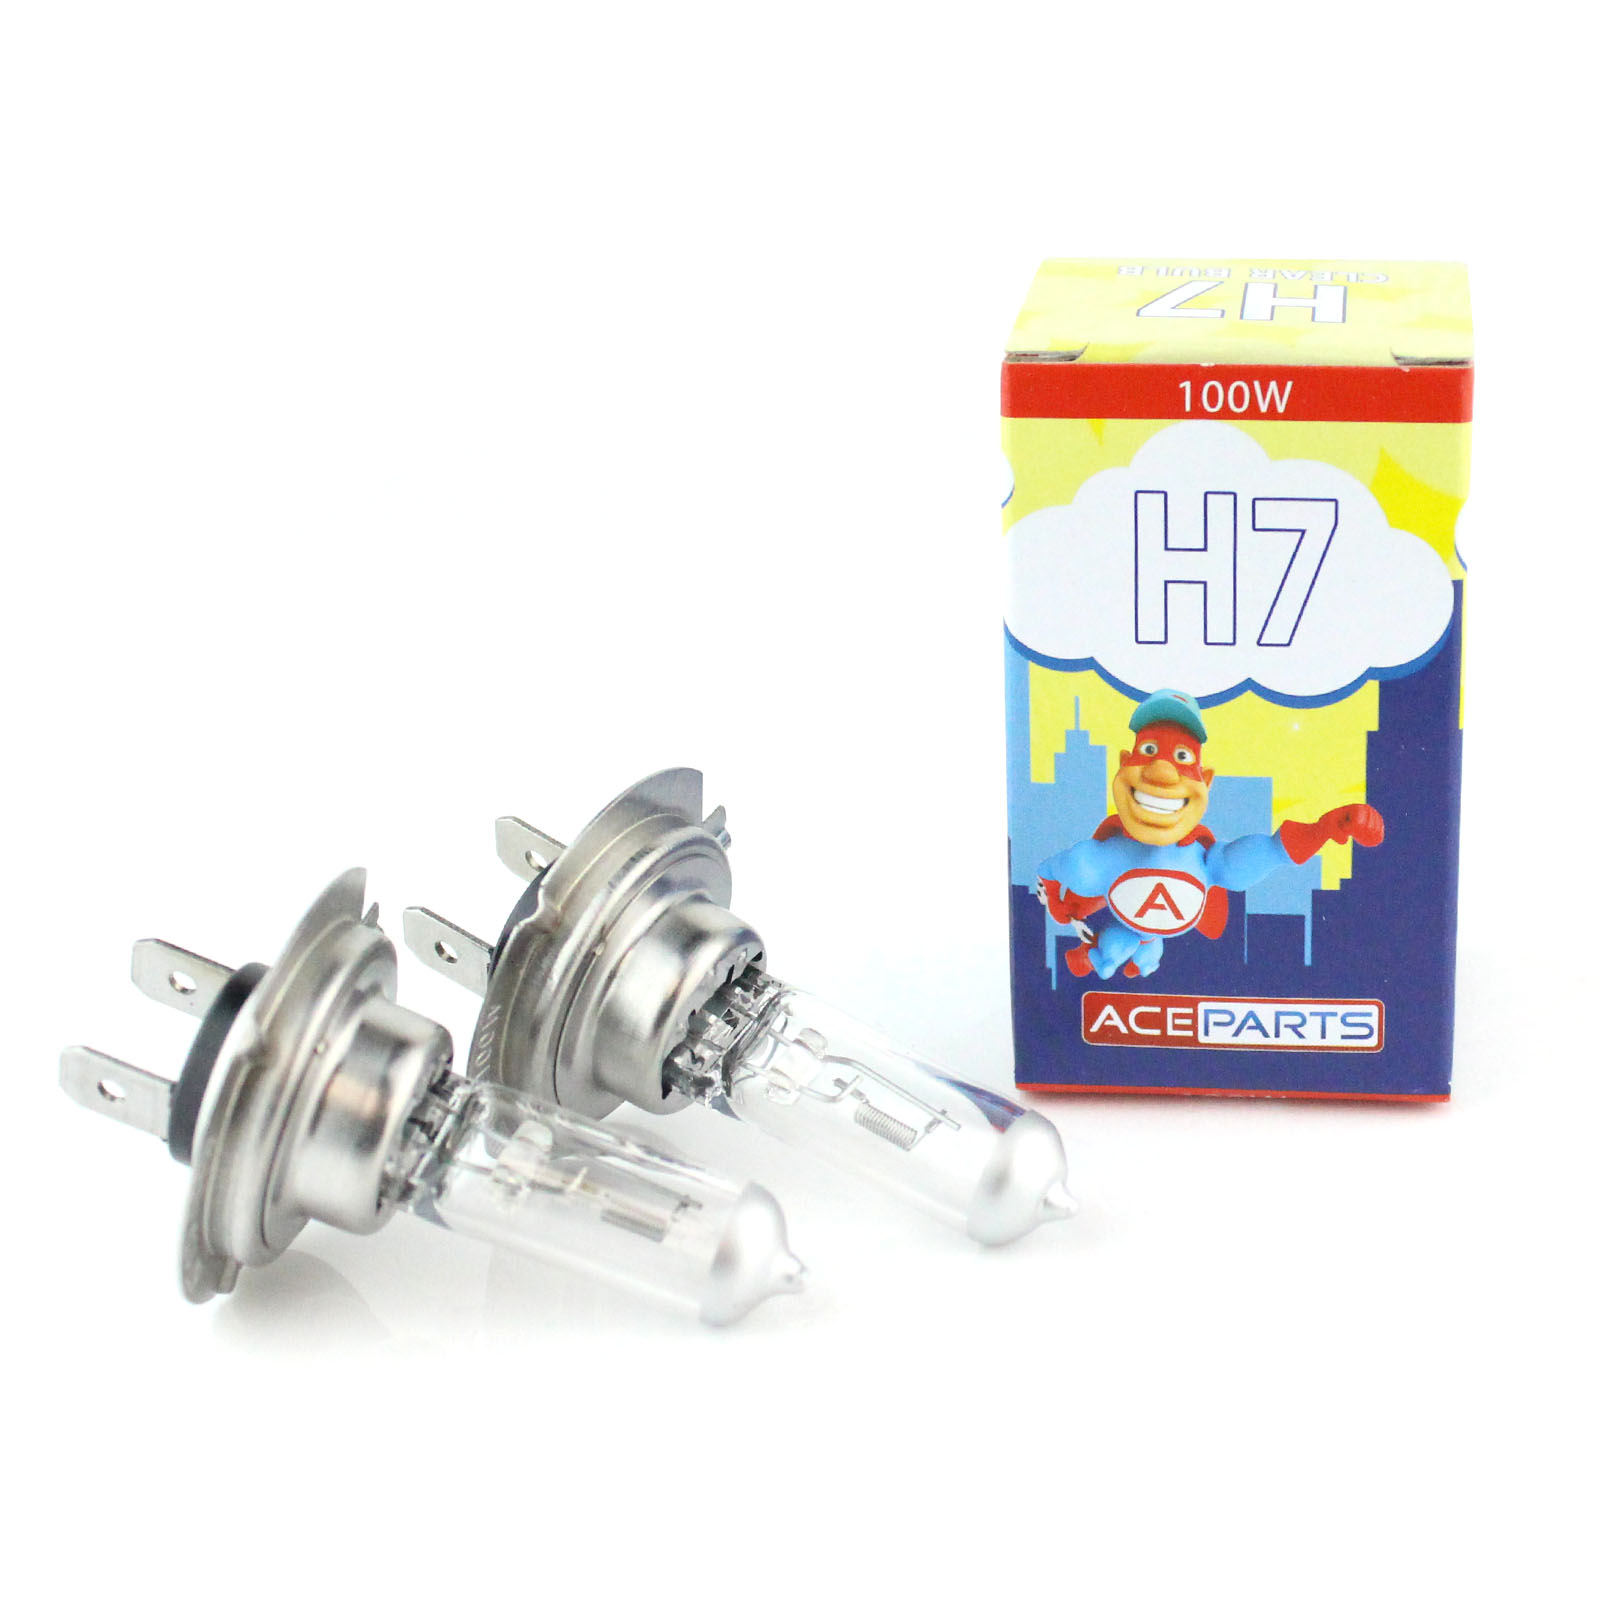 2x h7 499 100w clear xenon headlight bulbs 12v ebay. Black Bedroom Furniture Sets. Home Design Ideas